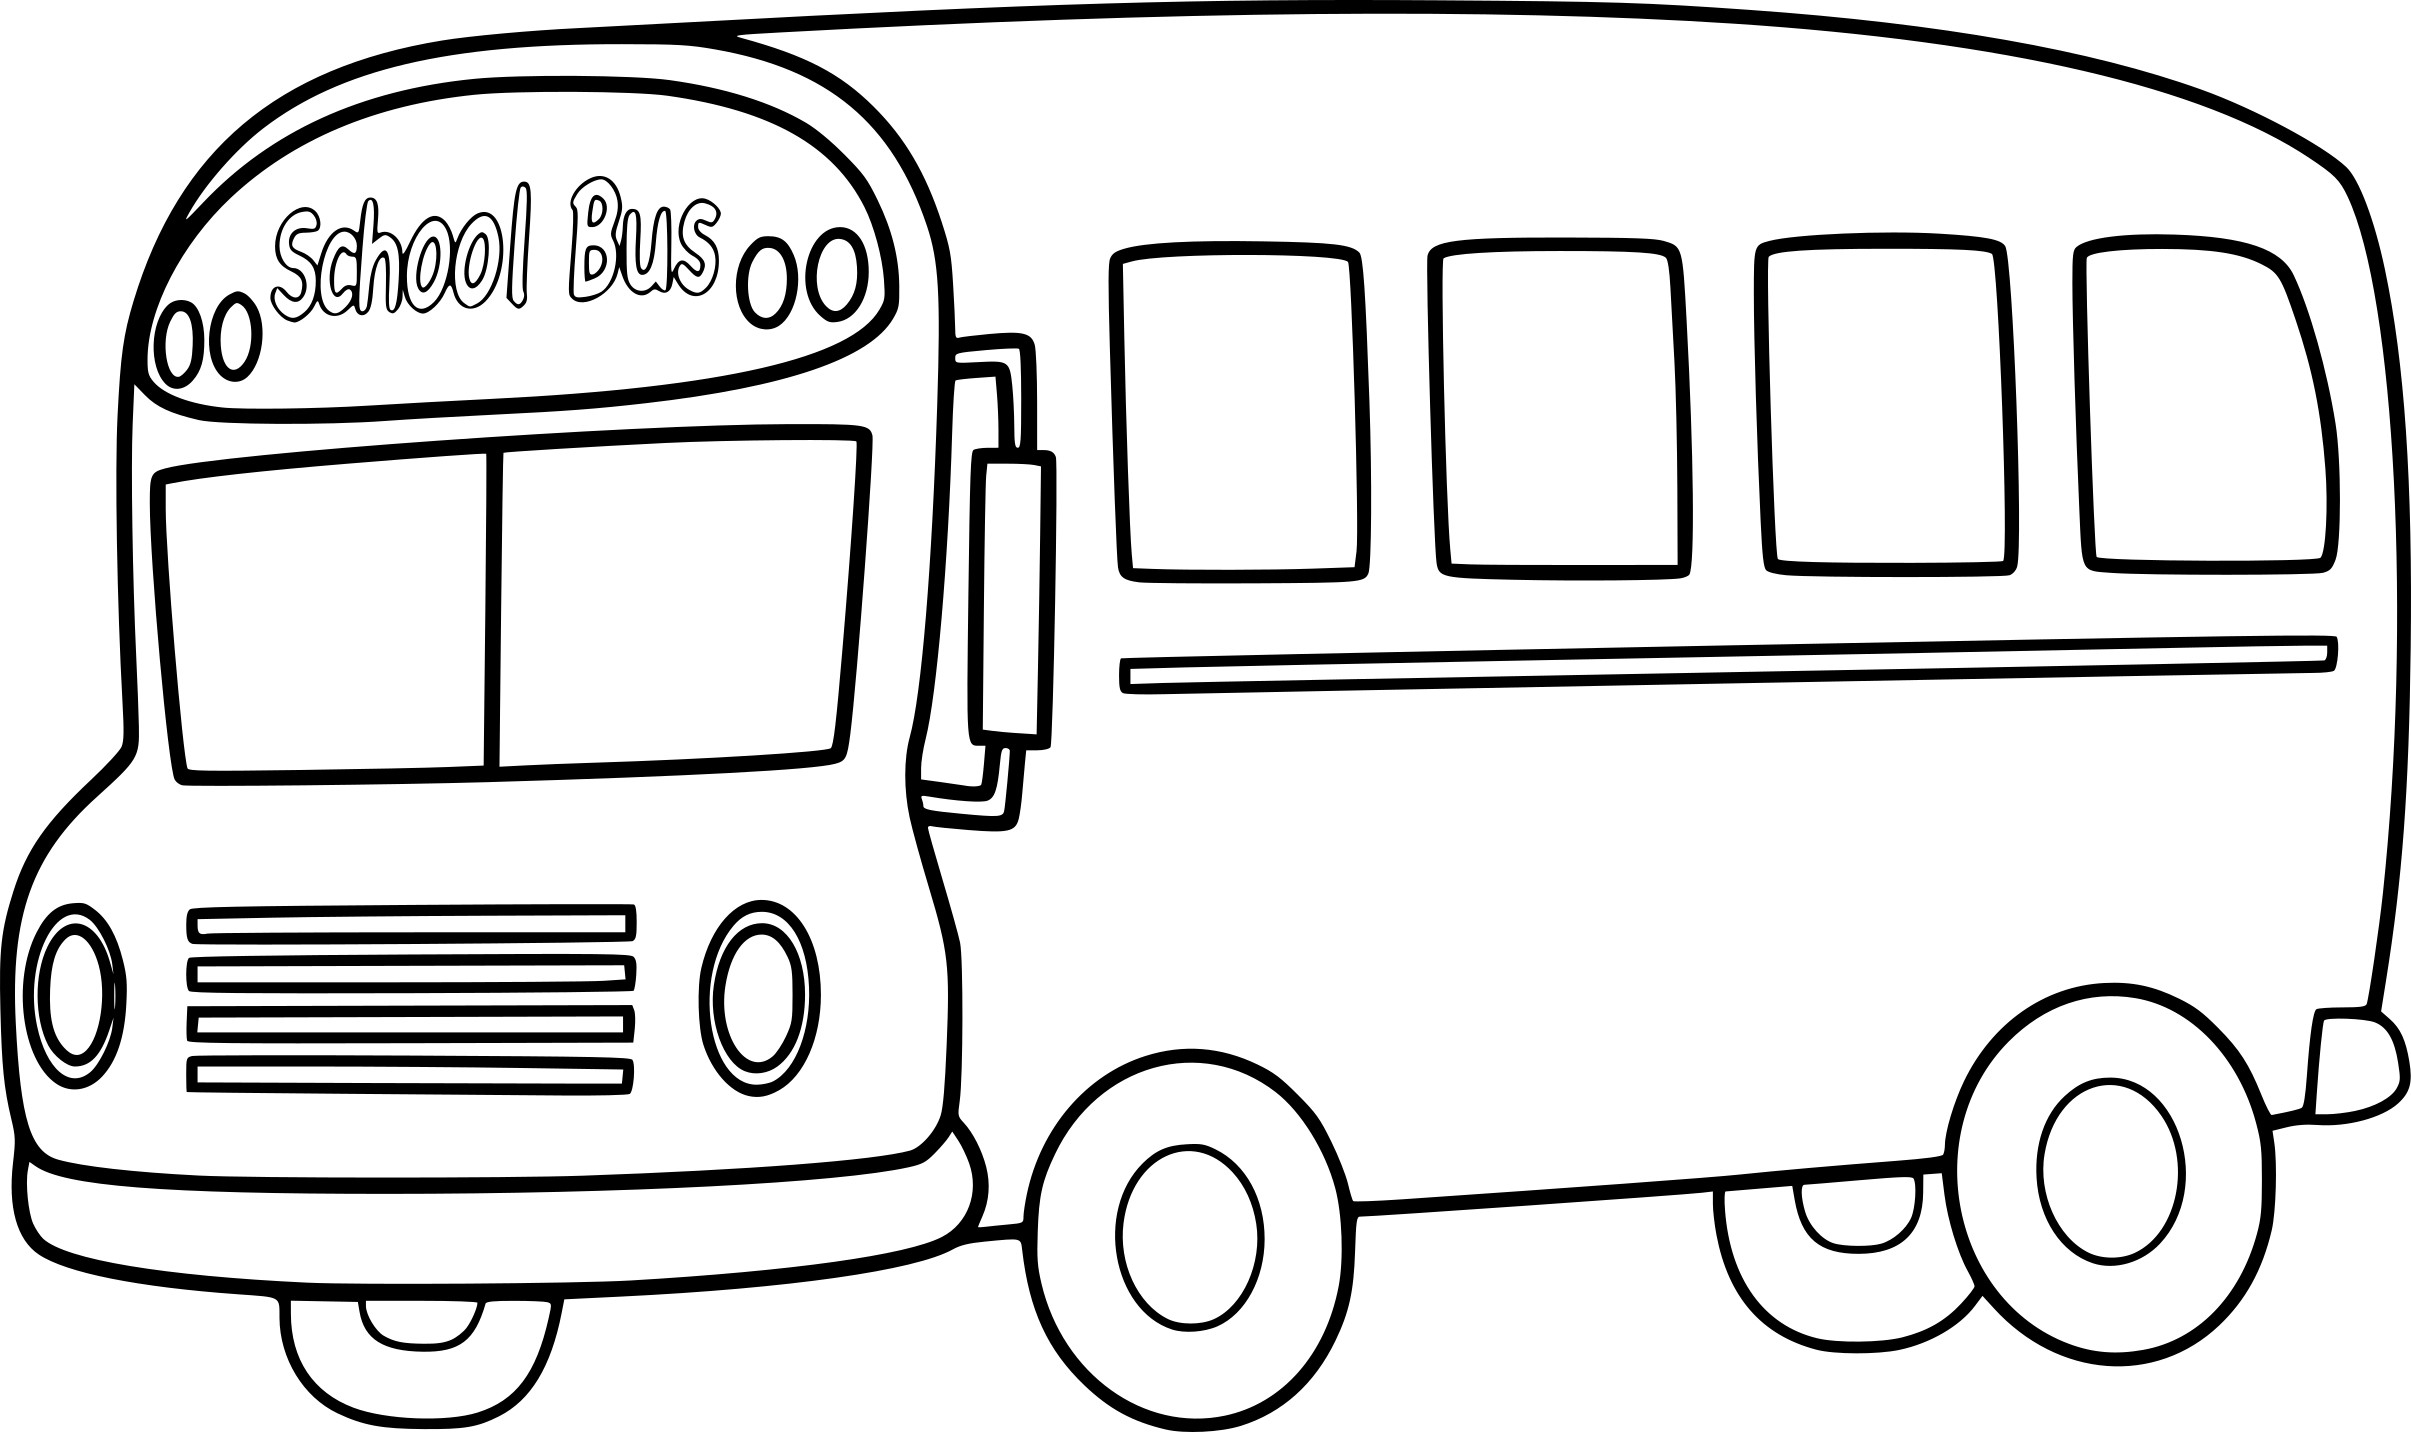 The gallery for bus black and white clipart - Bus scolaire dessin ...